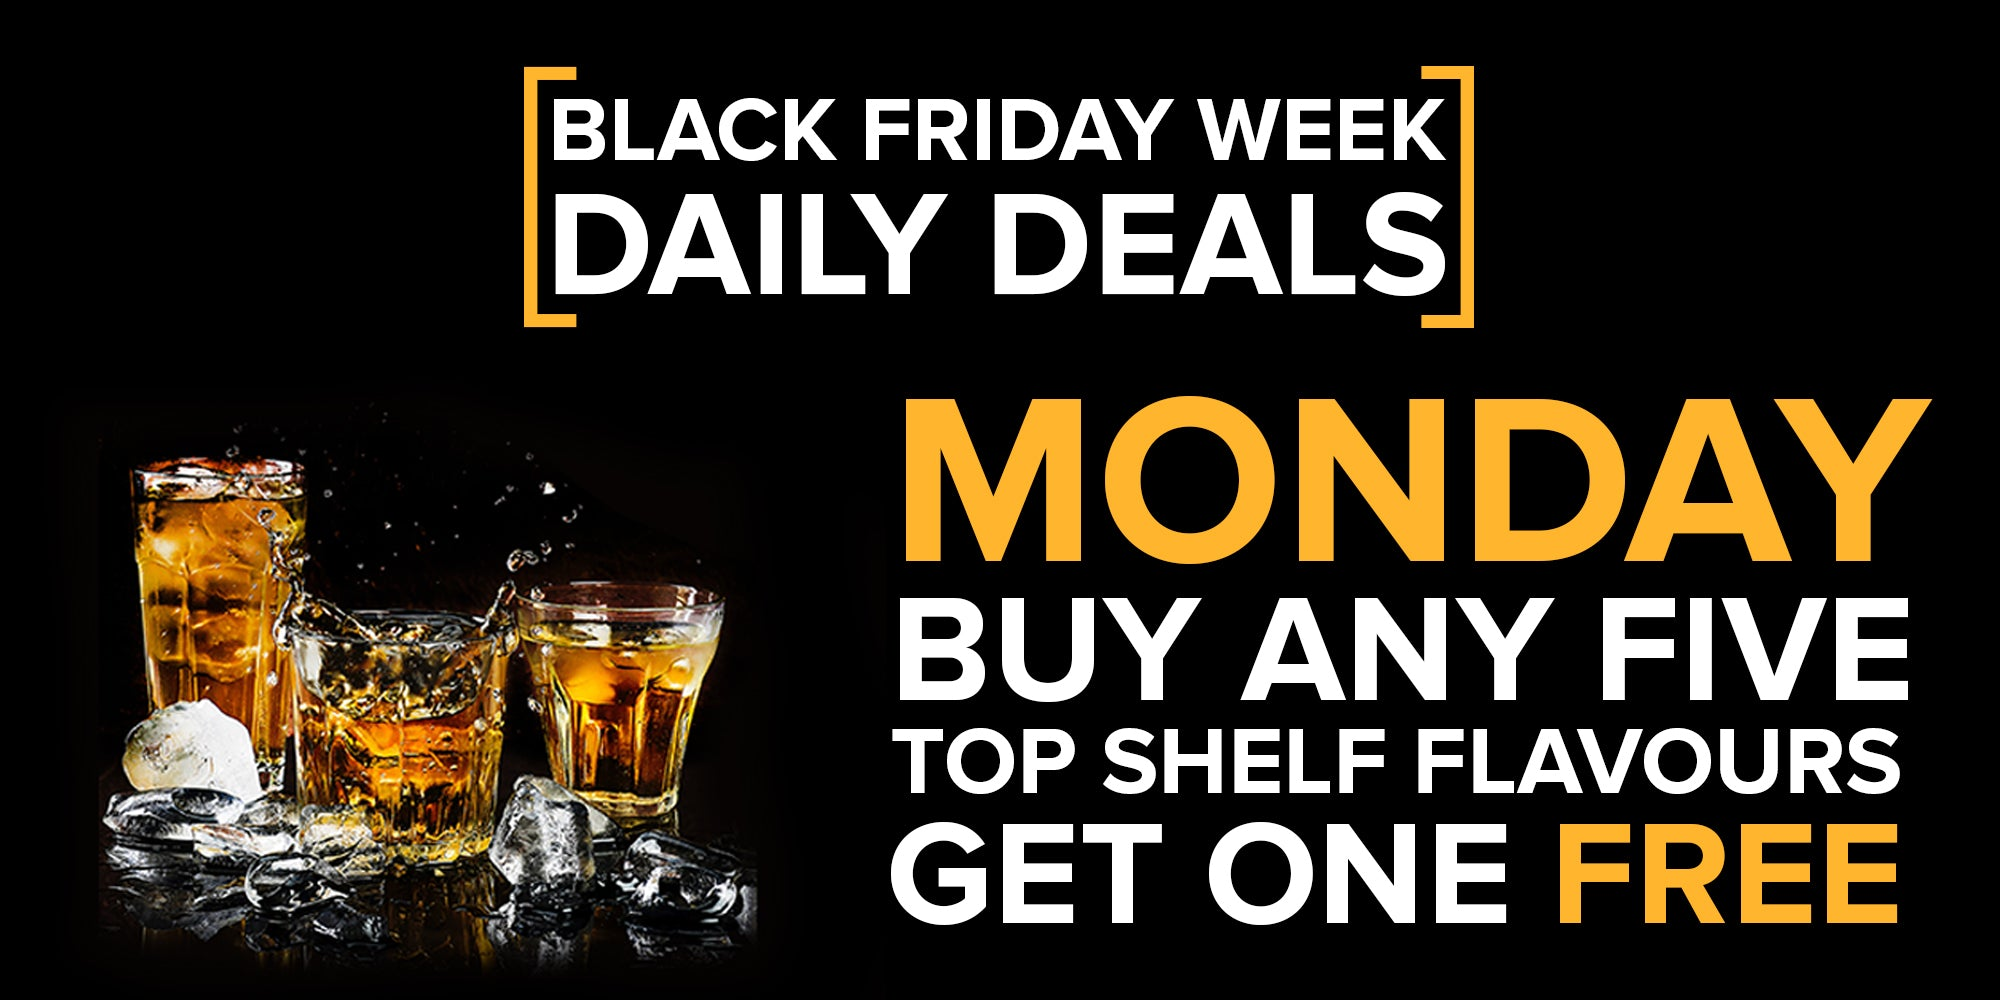 Black Friday Week Daily Deals - Buy 5 Still Spirits Flavours, Get 1 Free